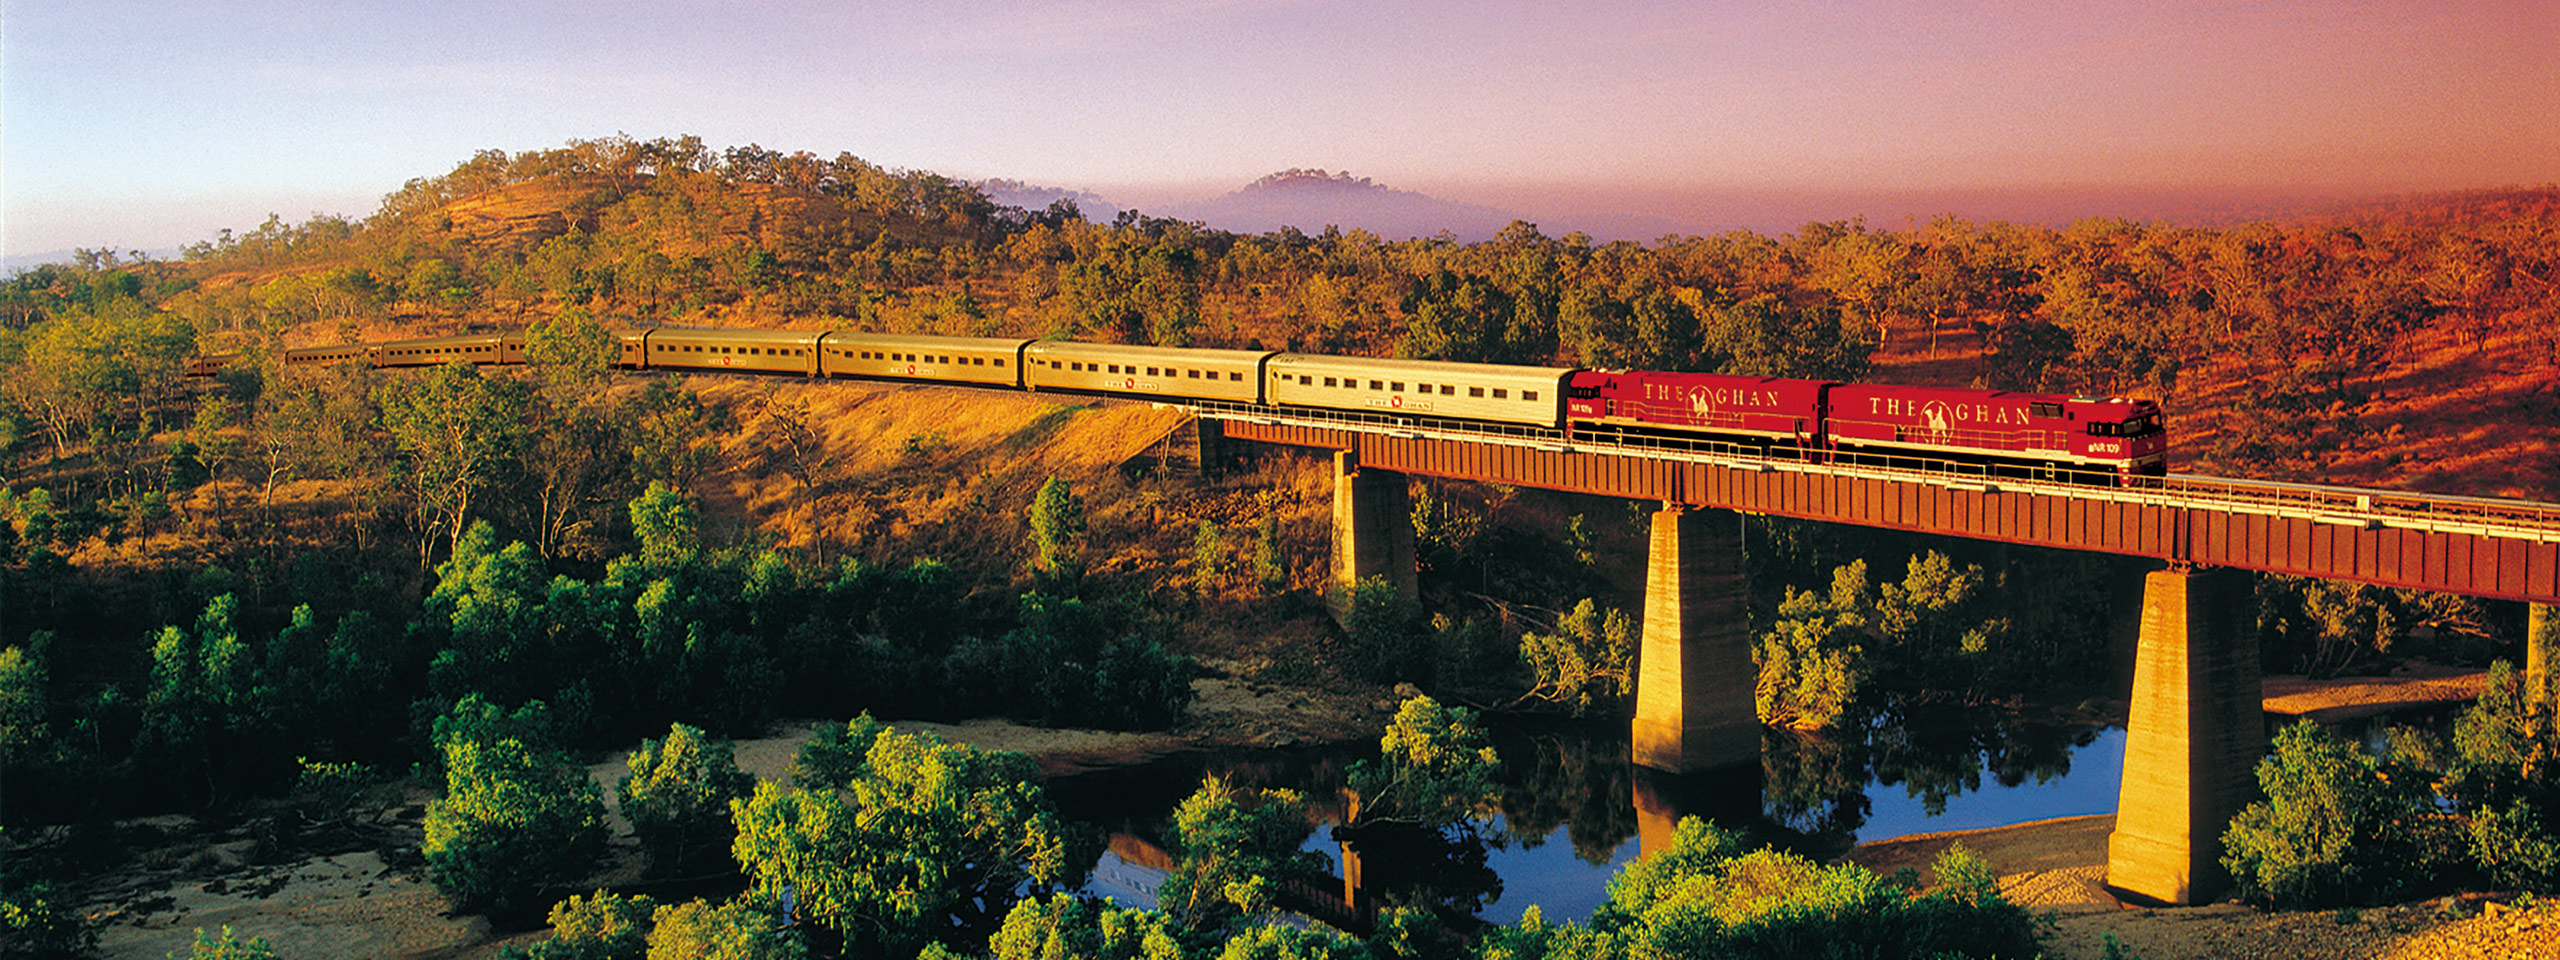 The Ghan, Northern Territory